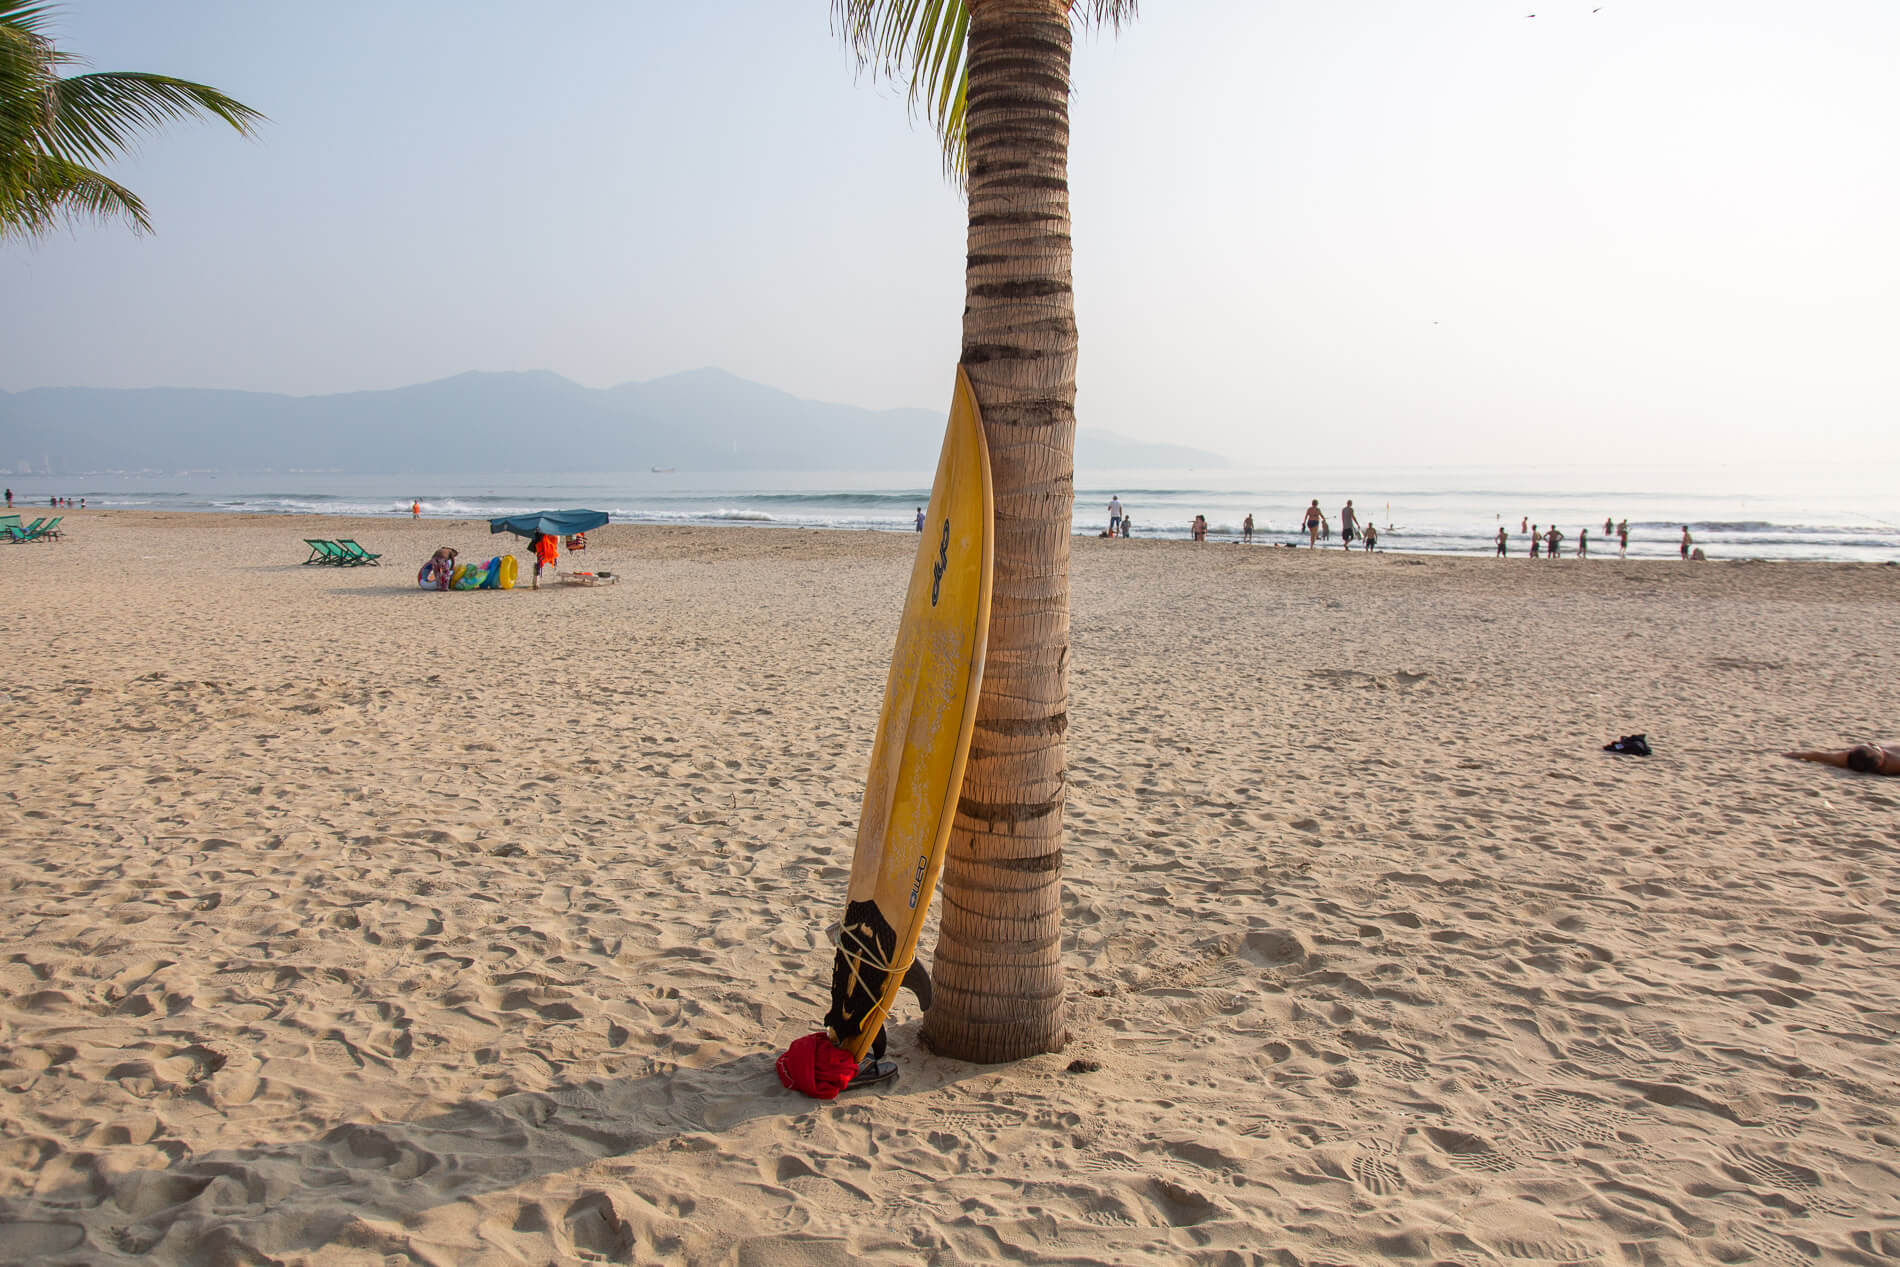 Surfboards, palm trees and wide sandy beaches of Da Nang